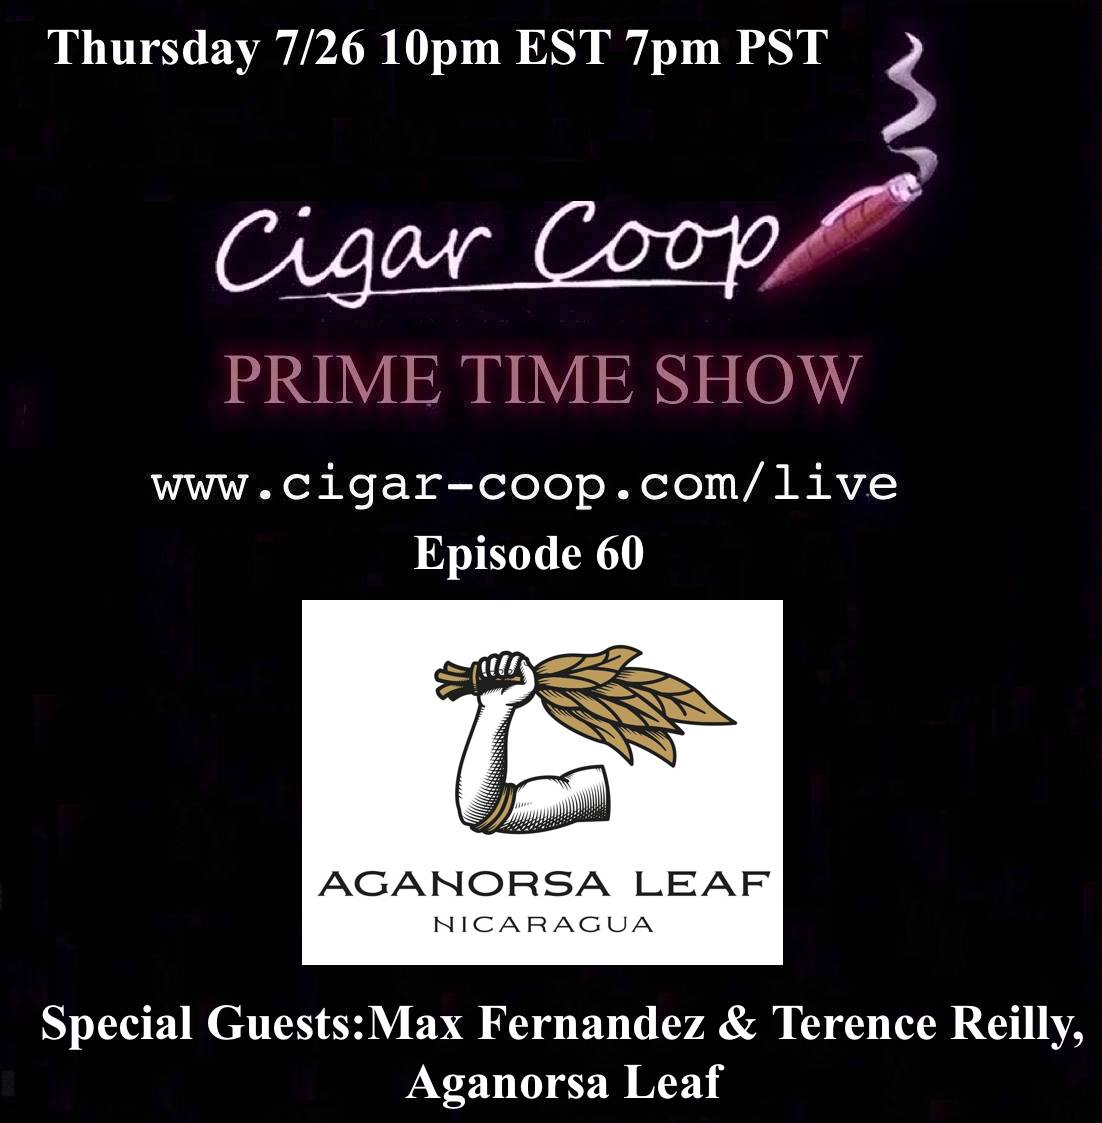 Announcement: Prime Time Show Episode 60 – Max Fernandez and Terence Reilly, Aganorsa Leaf – 10pm EST, 7pm PST